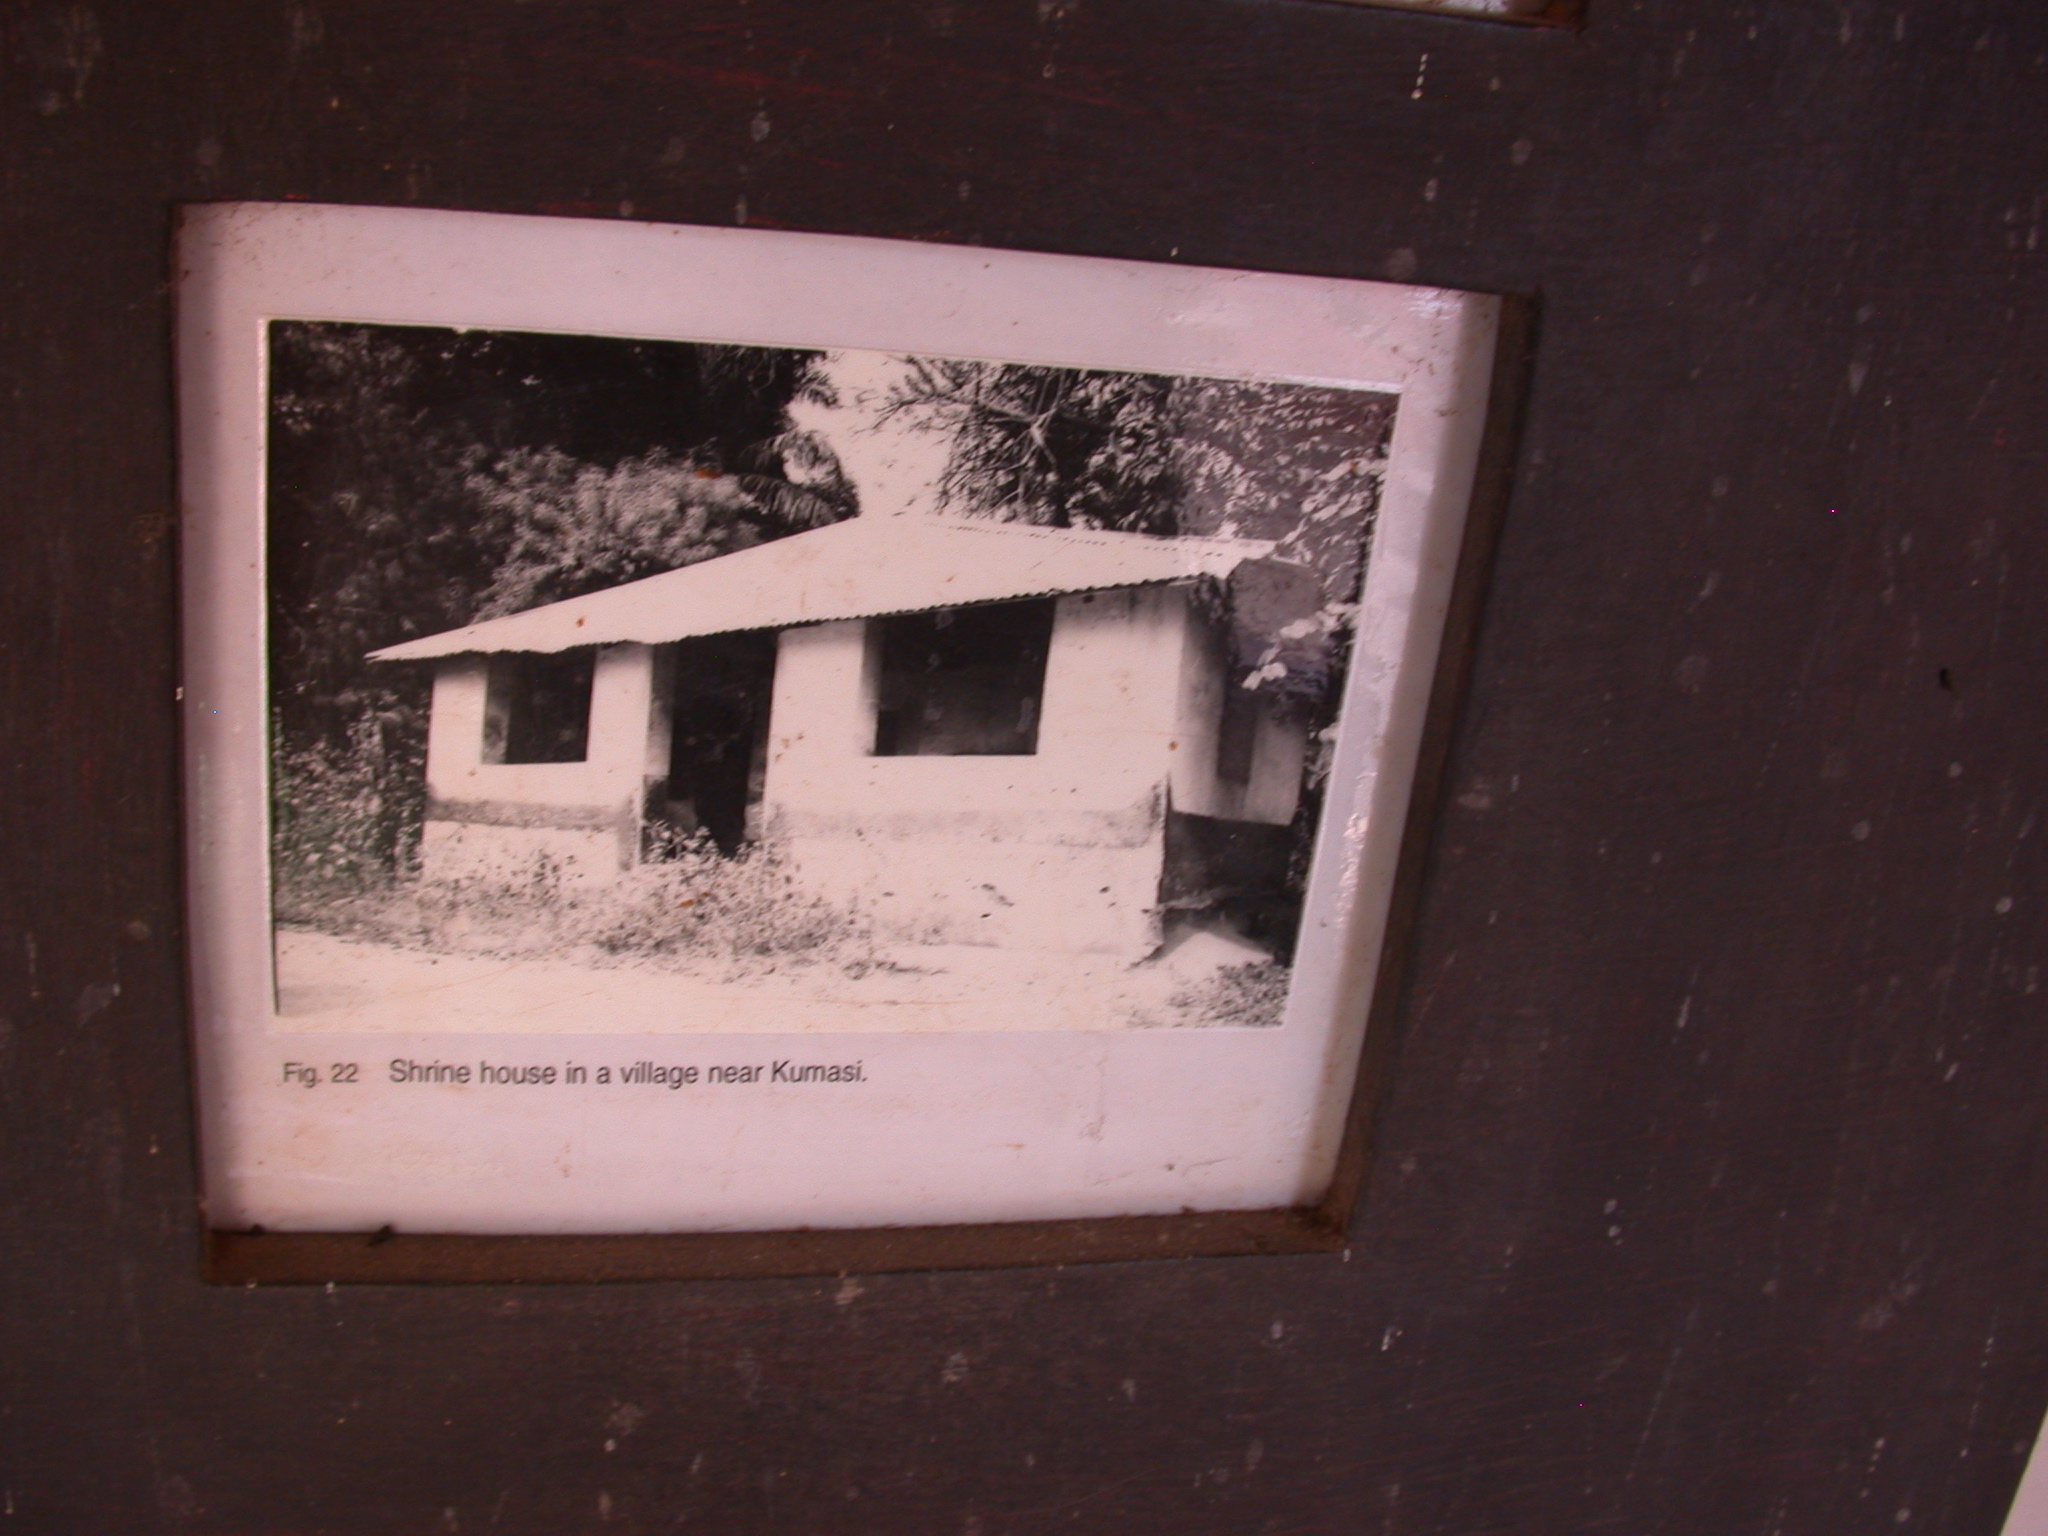 Photograph of Shrine House in Village Near Kumasi, Asante Traditional Shrine at Ejisu-Besease, Ghana